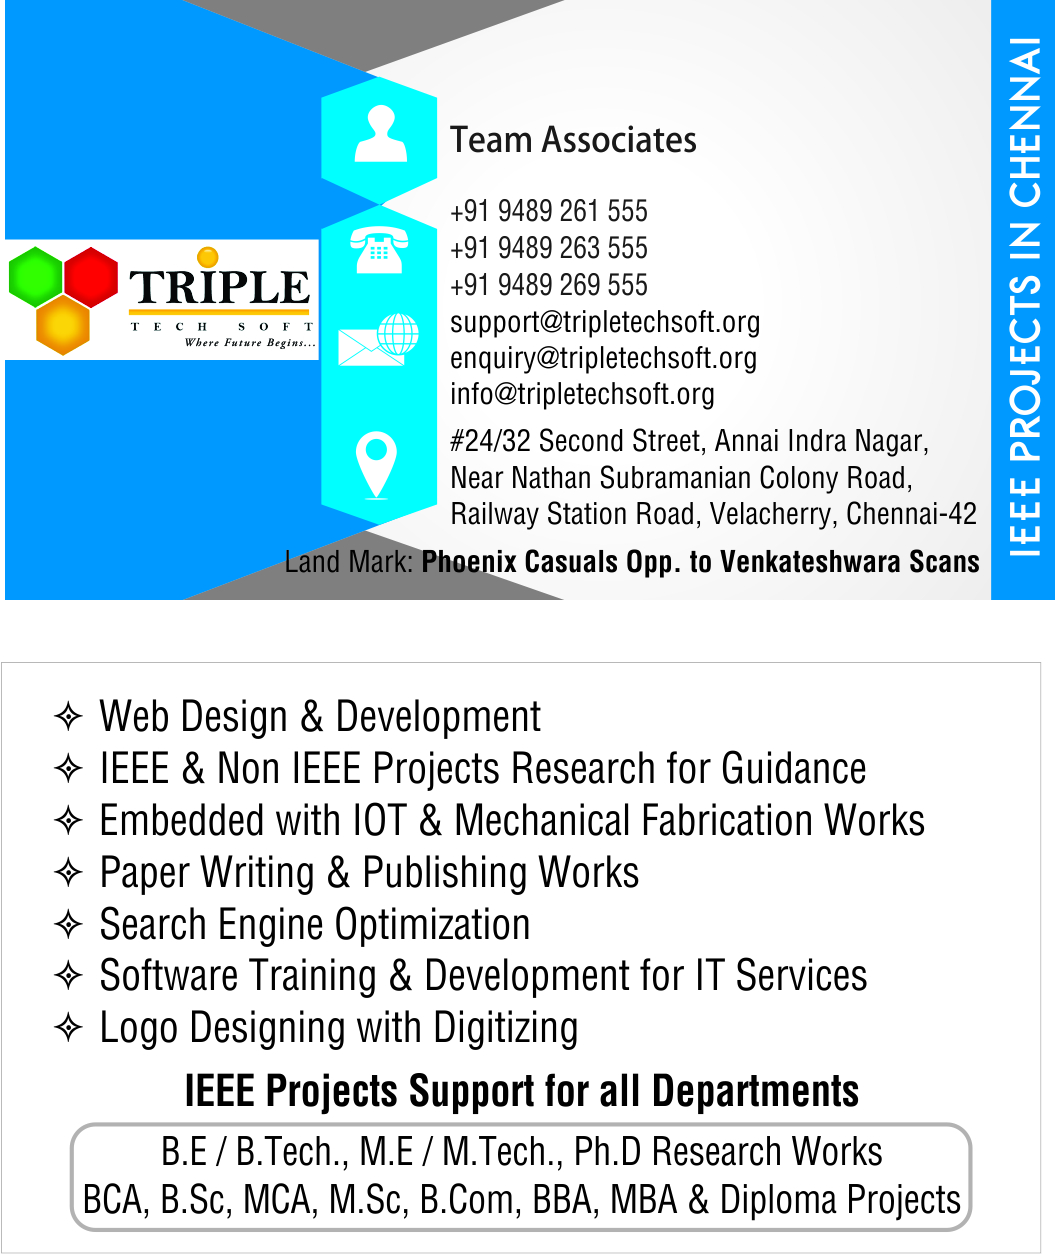 011 Research Paper Ieee Search Engine Imposing Optimization Full